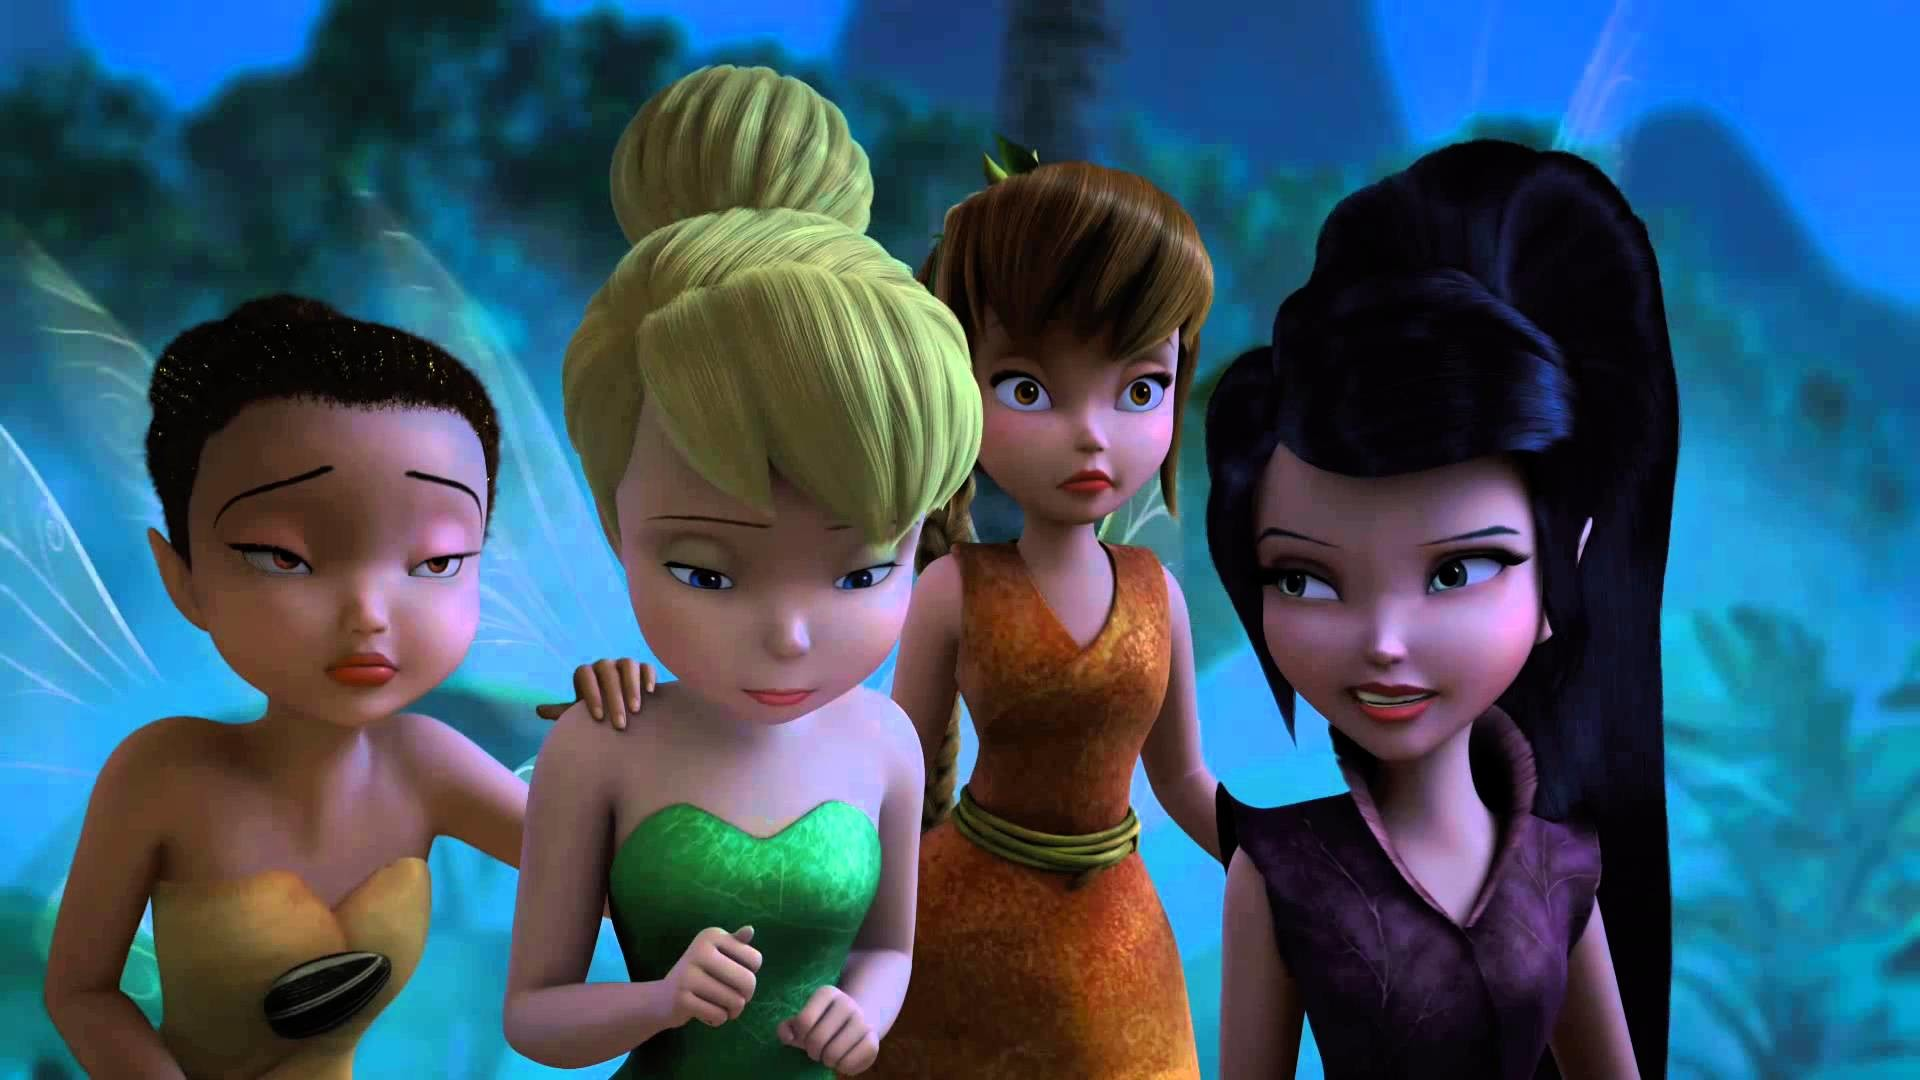 Res: 1920x1080, Disney's TINKER BELL AND THE PIRATE FAIRY | Official HD Trailer - YouTube